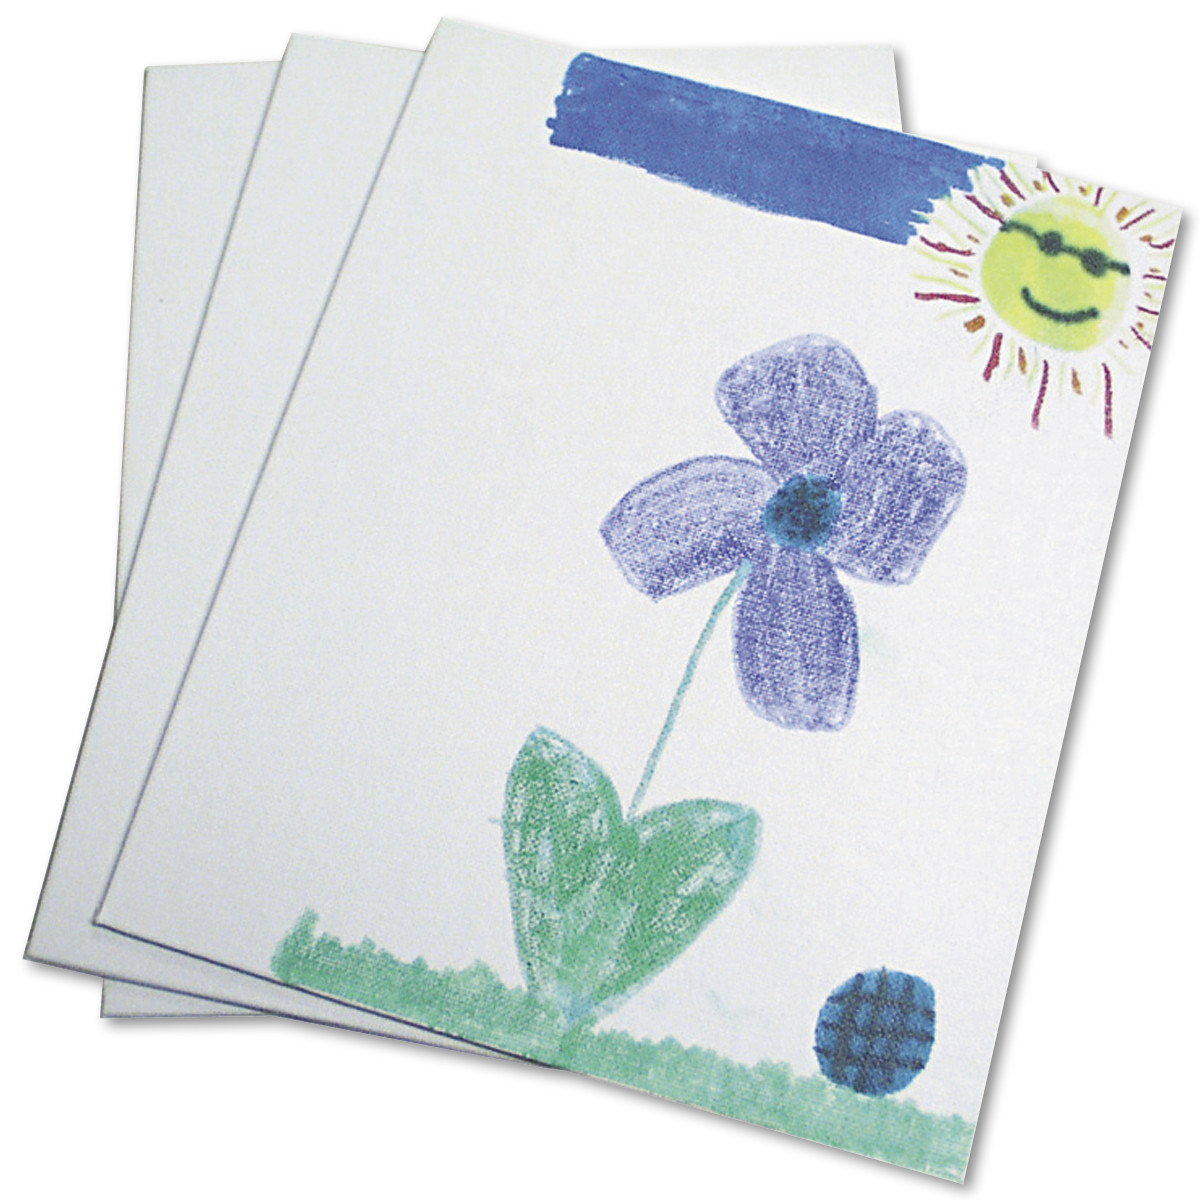 Chenille Kraft Canvas Panel, 9 x 12 x 1/8, White, 3/Pack